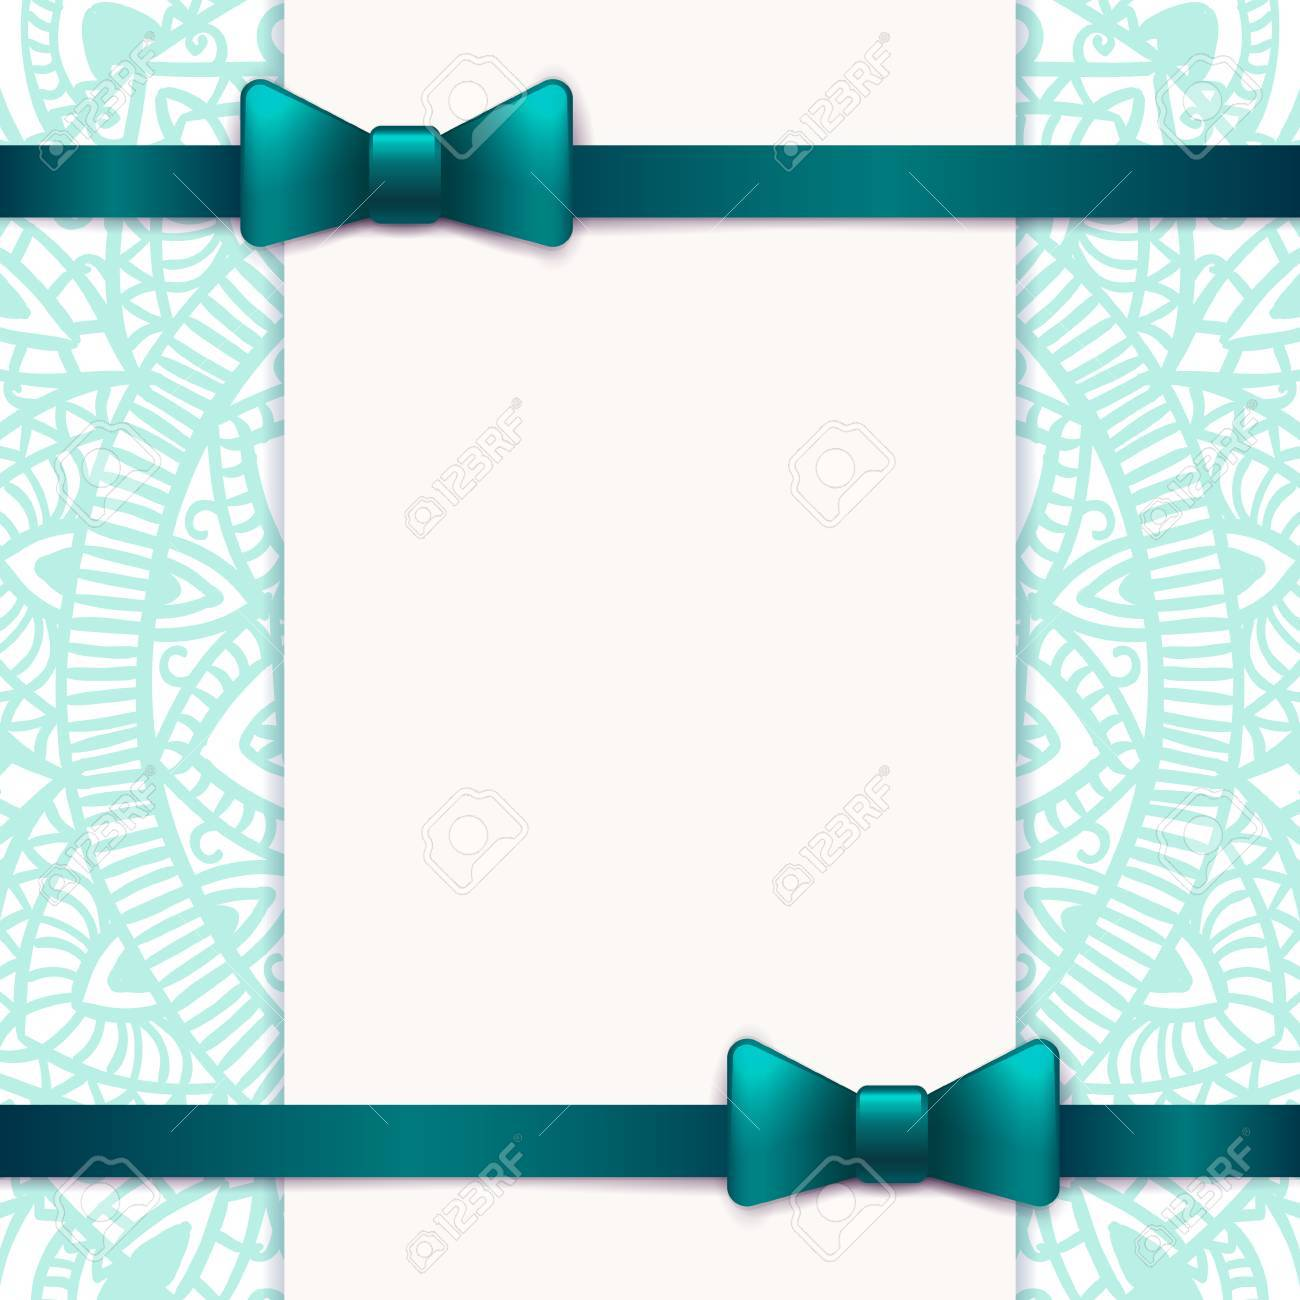 Blue Vintage Greeting Card Template With Bow And Ribbon. Vector ...